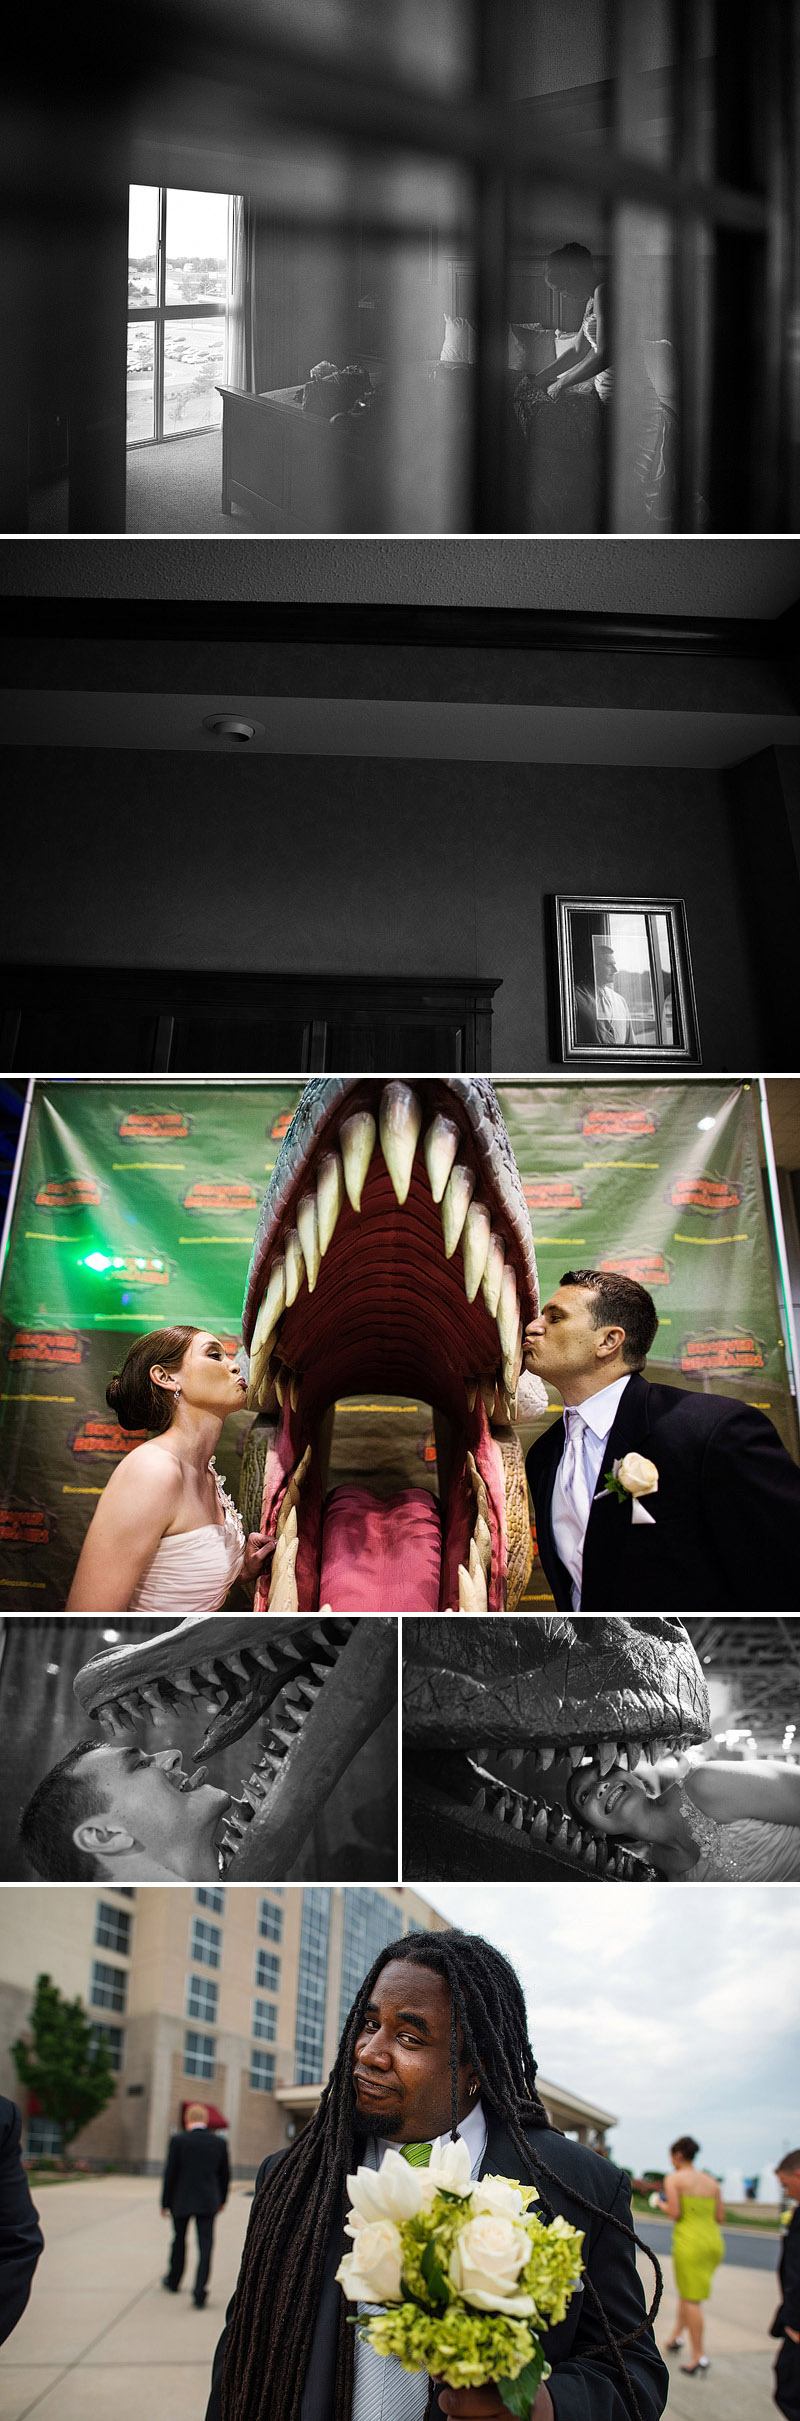 Candid wedding photography and dinosaur portraits.